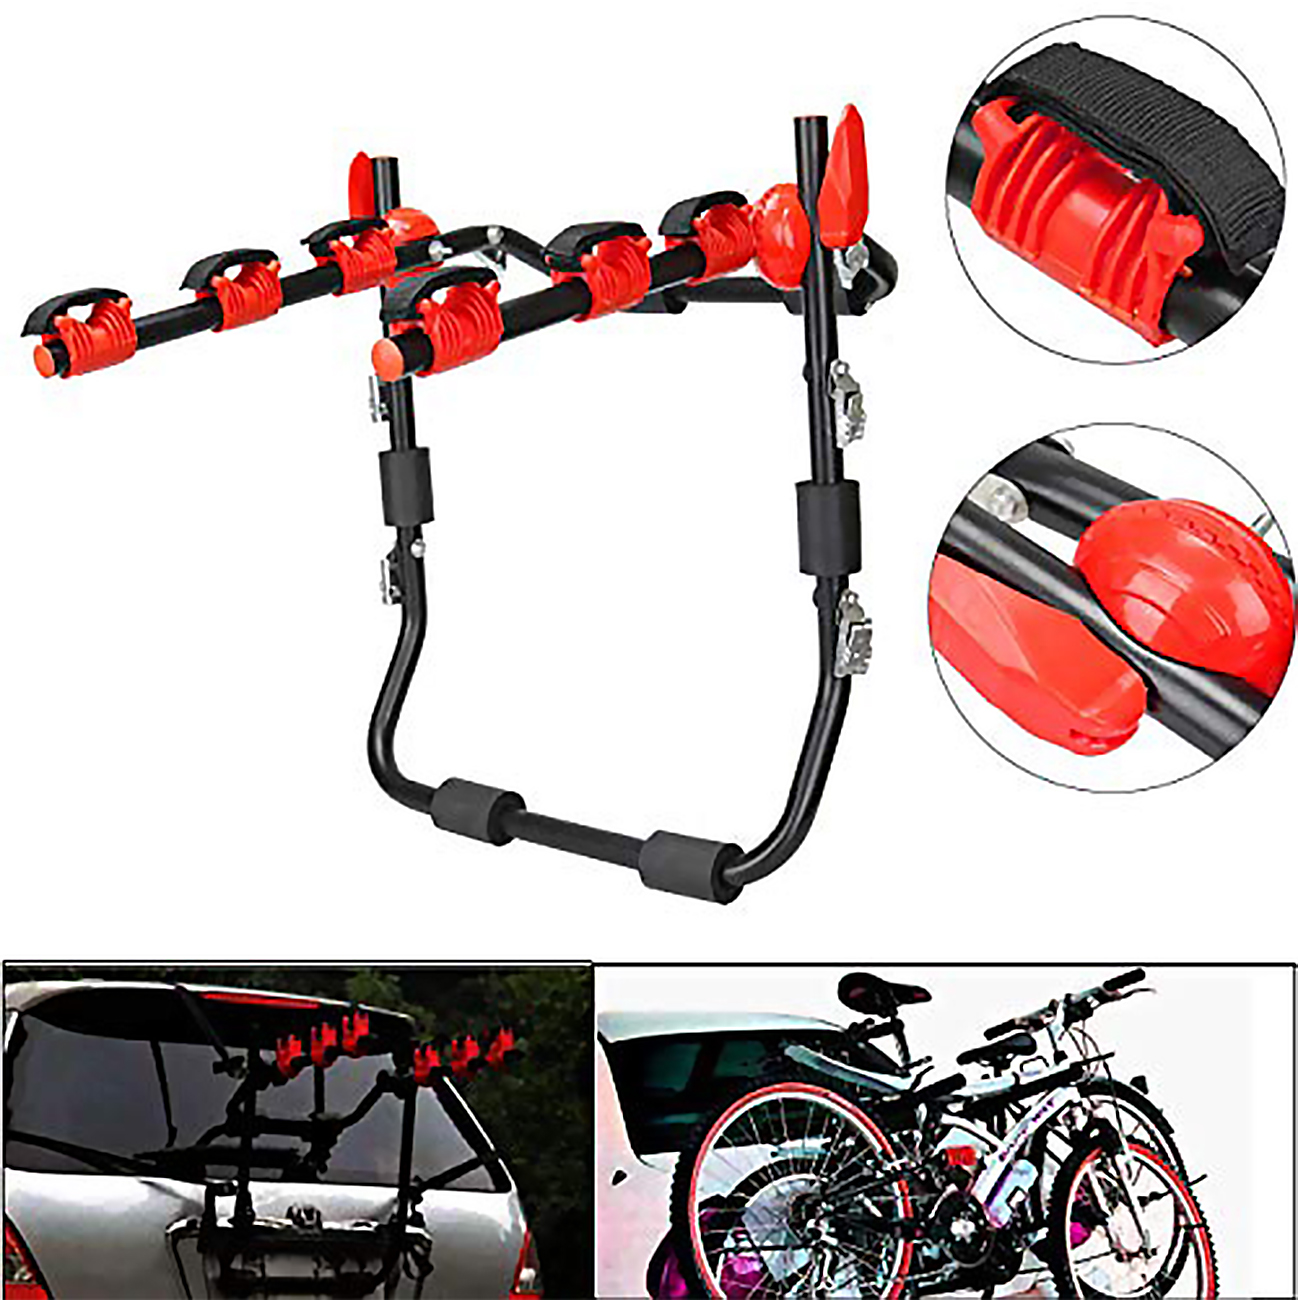 Samger Car Rear Bike Rack Carrier For 3 Bikes Safety Ropes Rear Stand Carrier Hatchback Bicycle Tailgate Car Rack|Roof Racks & Boxes| |  - title=